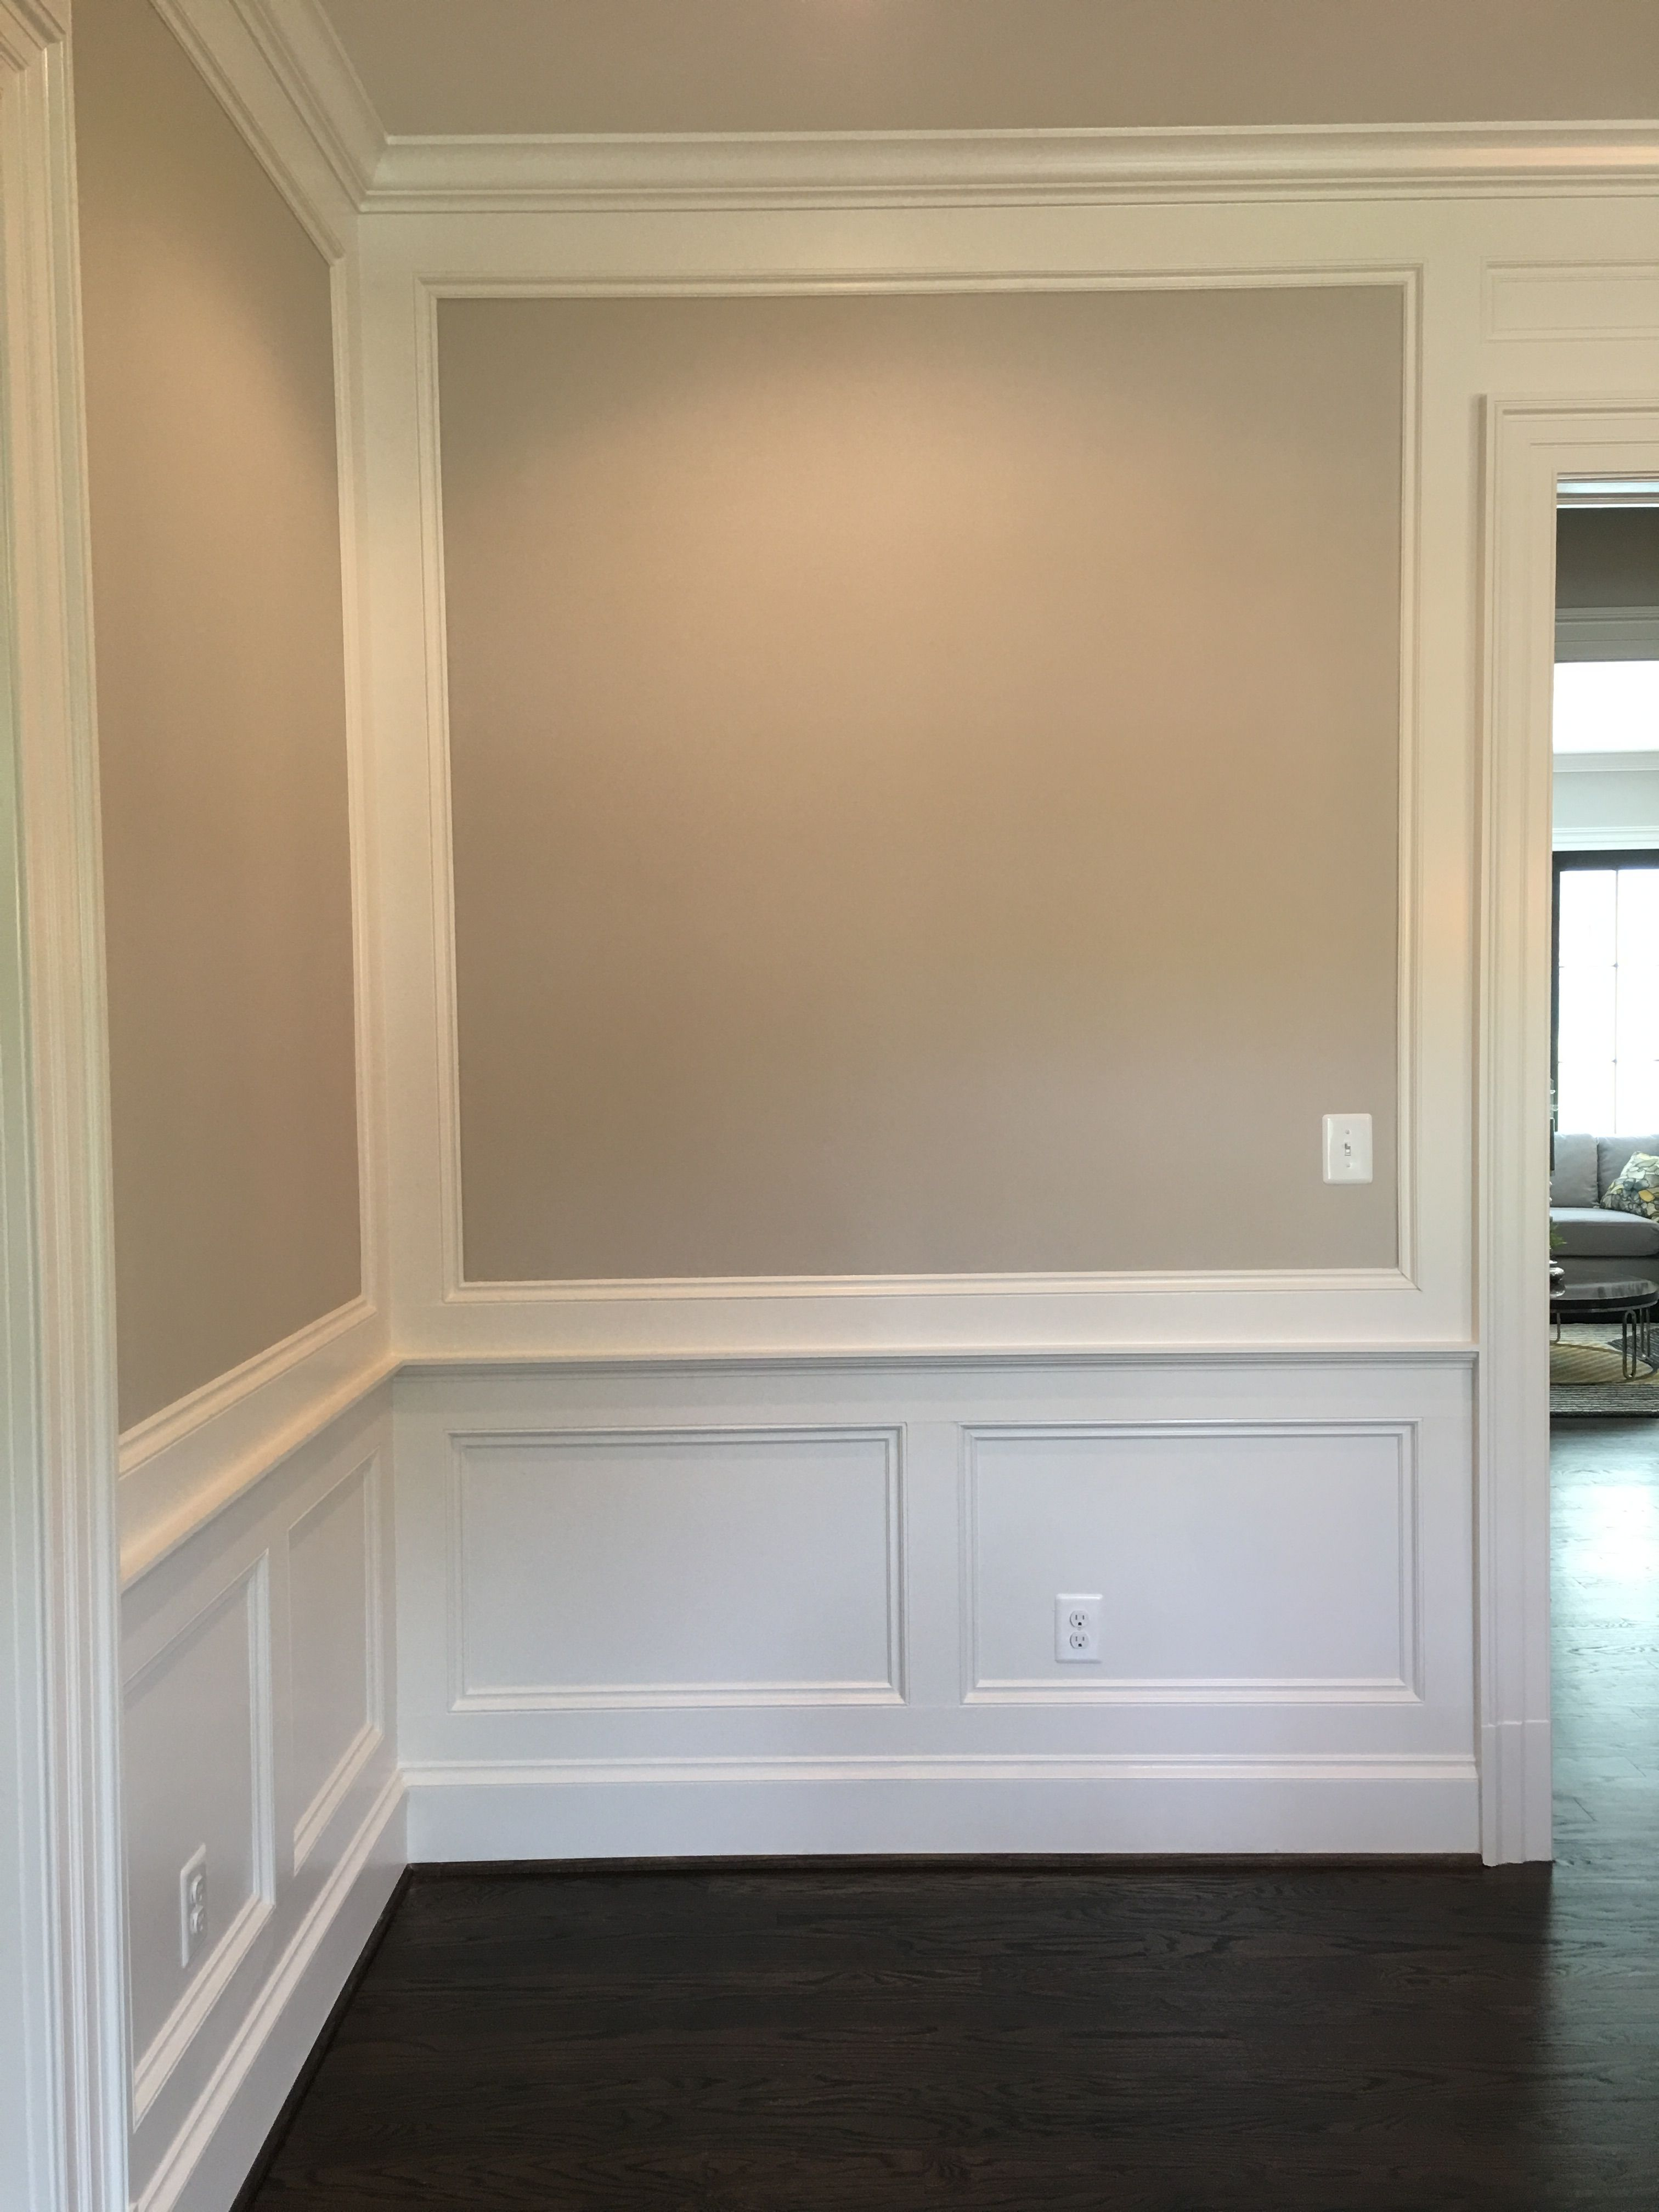 Pin By Rachel Kolly On Molding Trim Plaster Wainscoting Styles Dining Room Wainscoting Accent Walls In Living Room